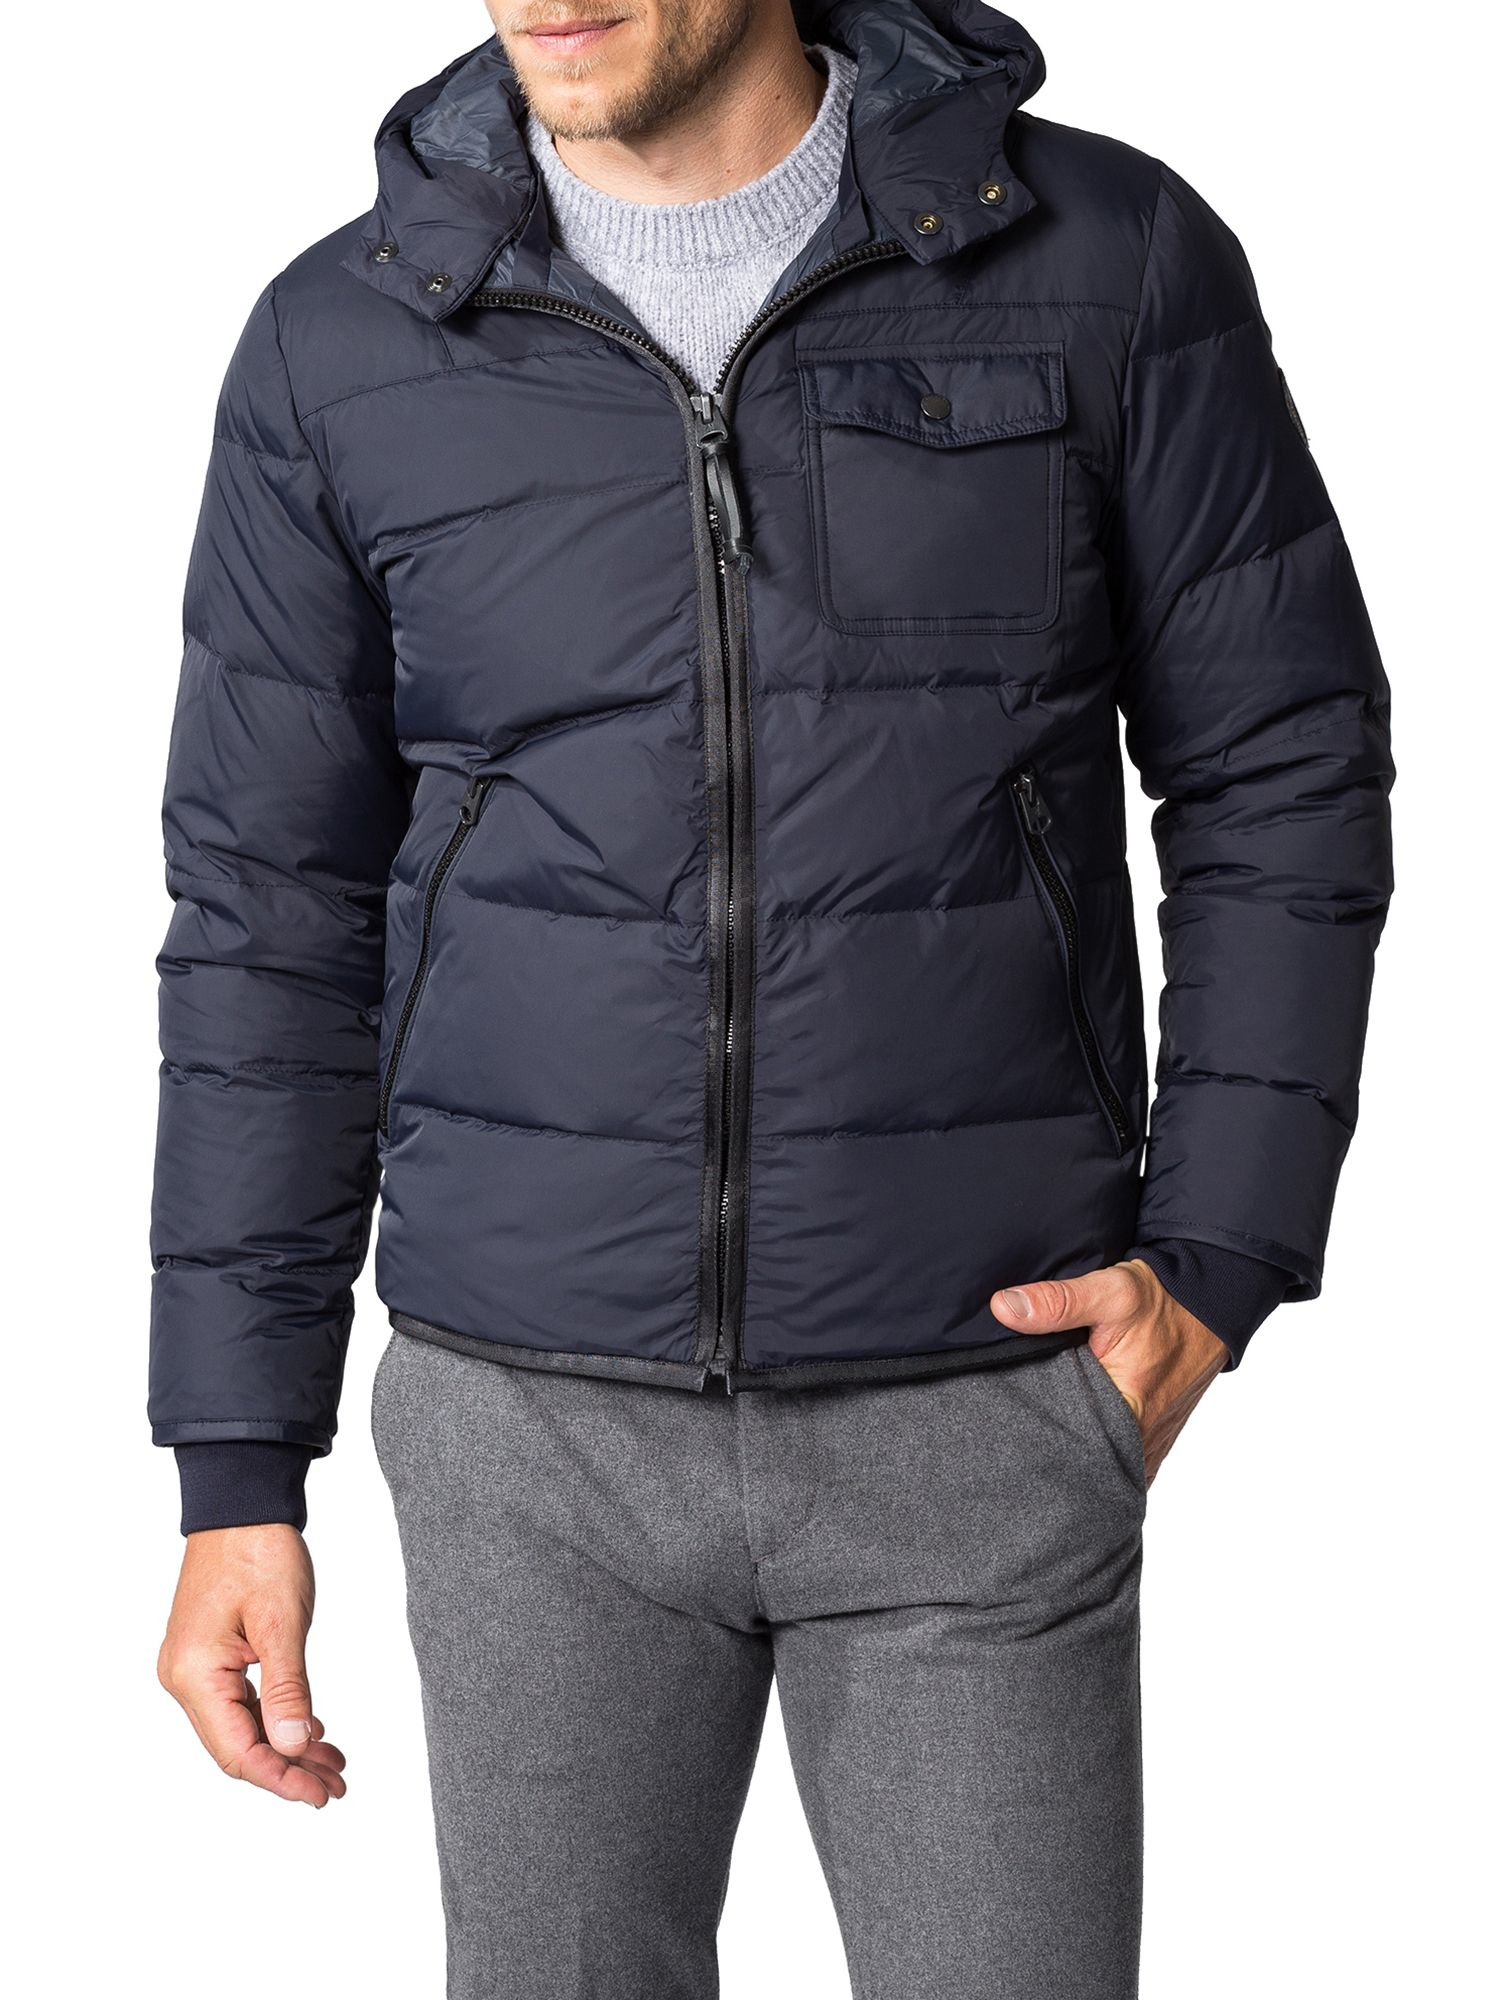 Marc O'polo Synthetic Down Jacket With Adjustable Hem in Midnight (Blue) for Men